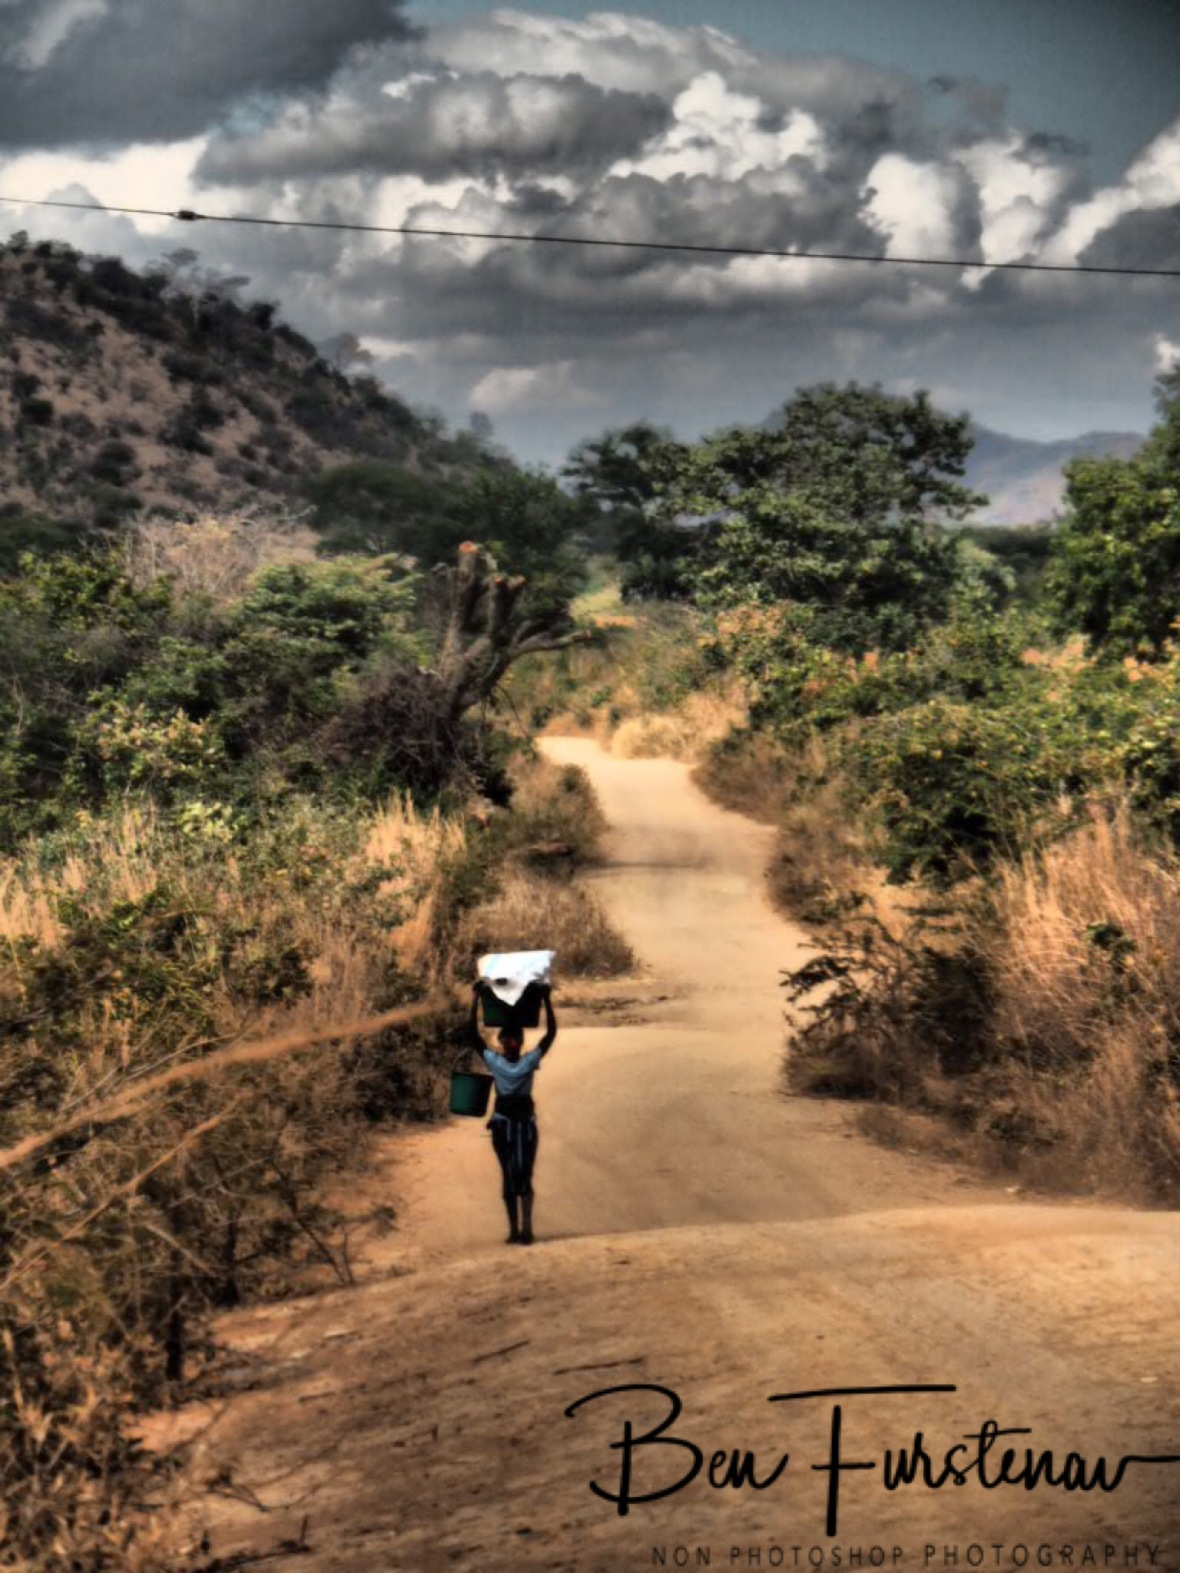 Walking miles for water, Northern Region, Malawi